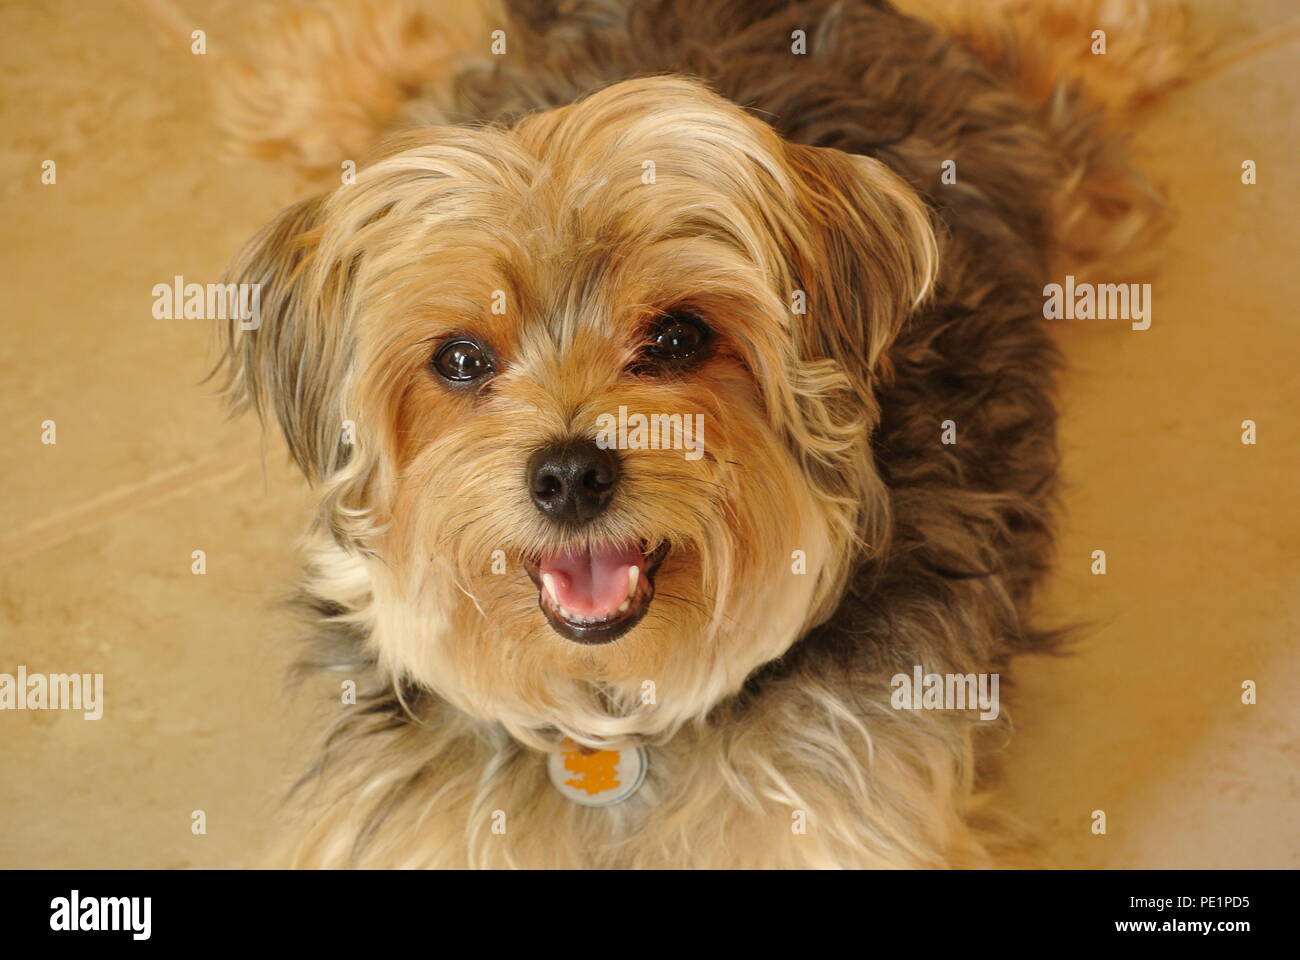 A close-up of a cute and fluffy little brown dog,  Morkie, lying on a ceramic floor and looking up , beige background - Stock Image